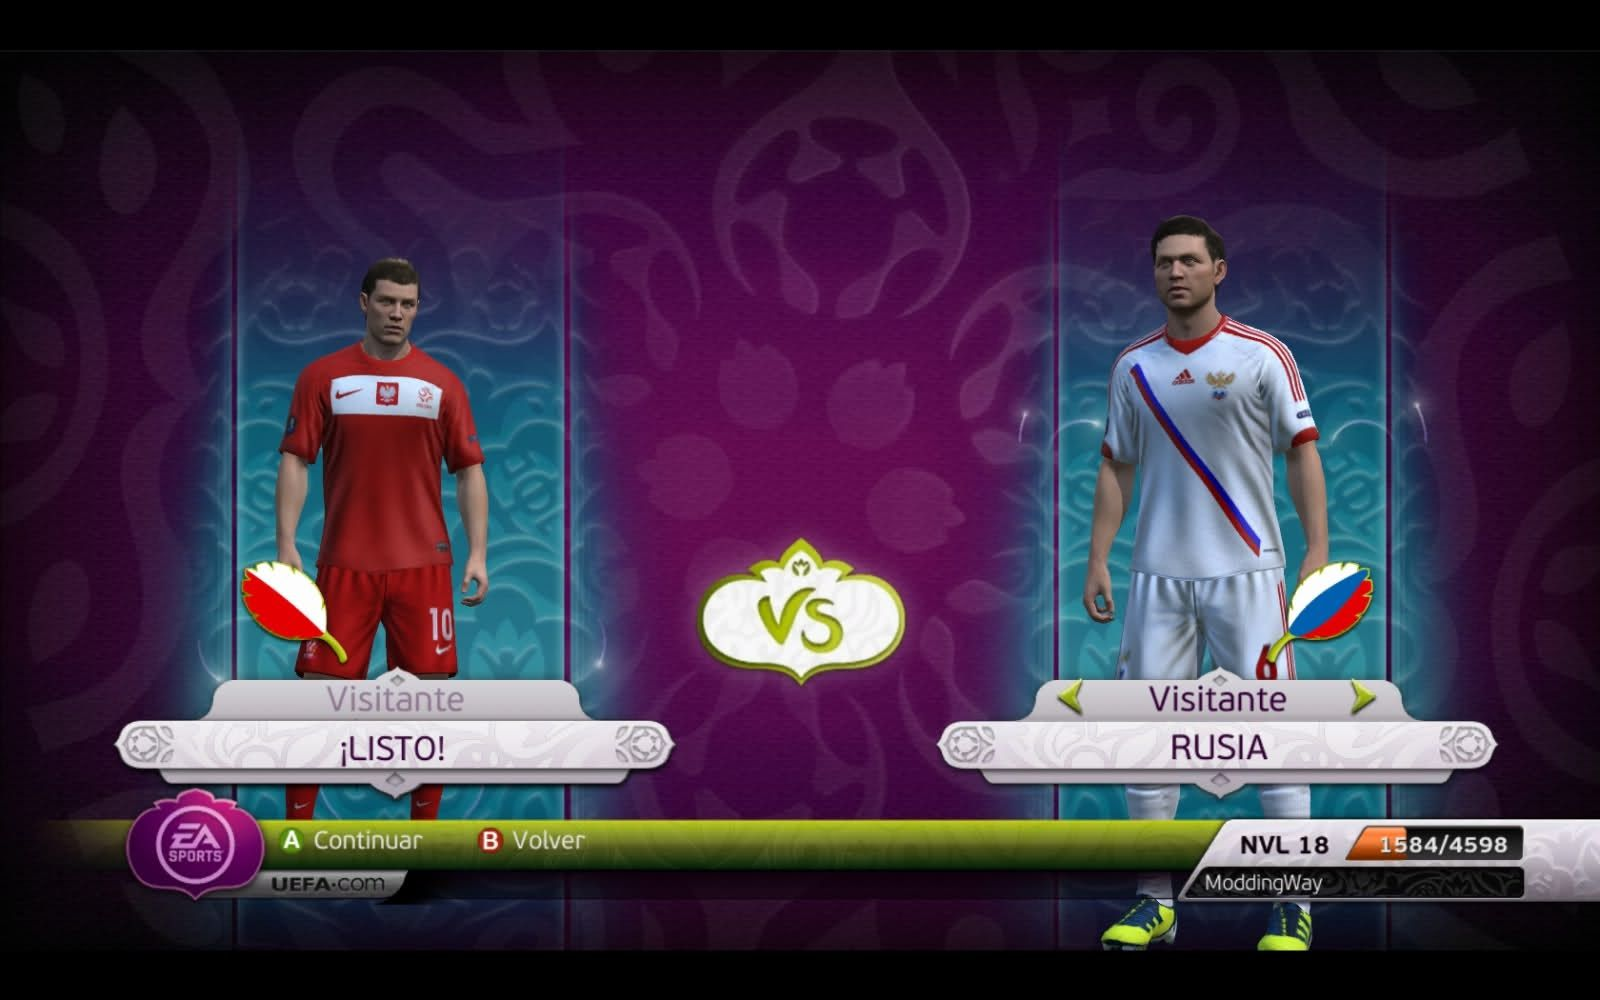 Ea sports uefa euro 2012 | how to download the game: pc youtube.